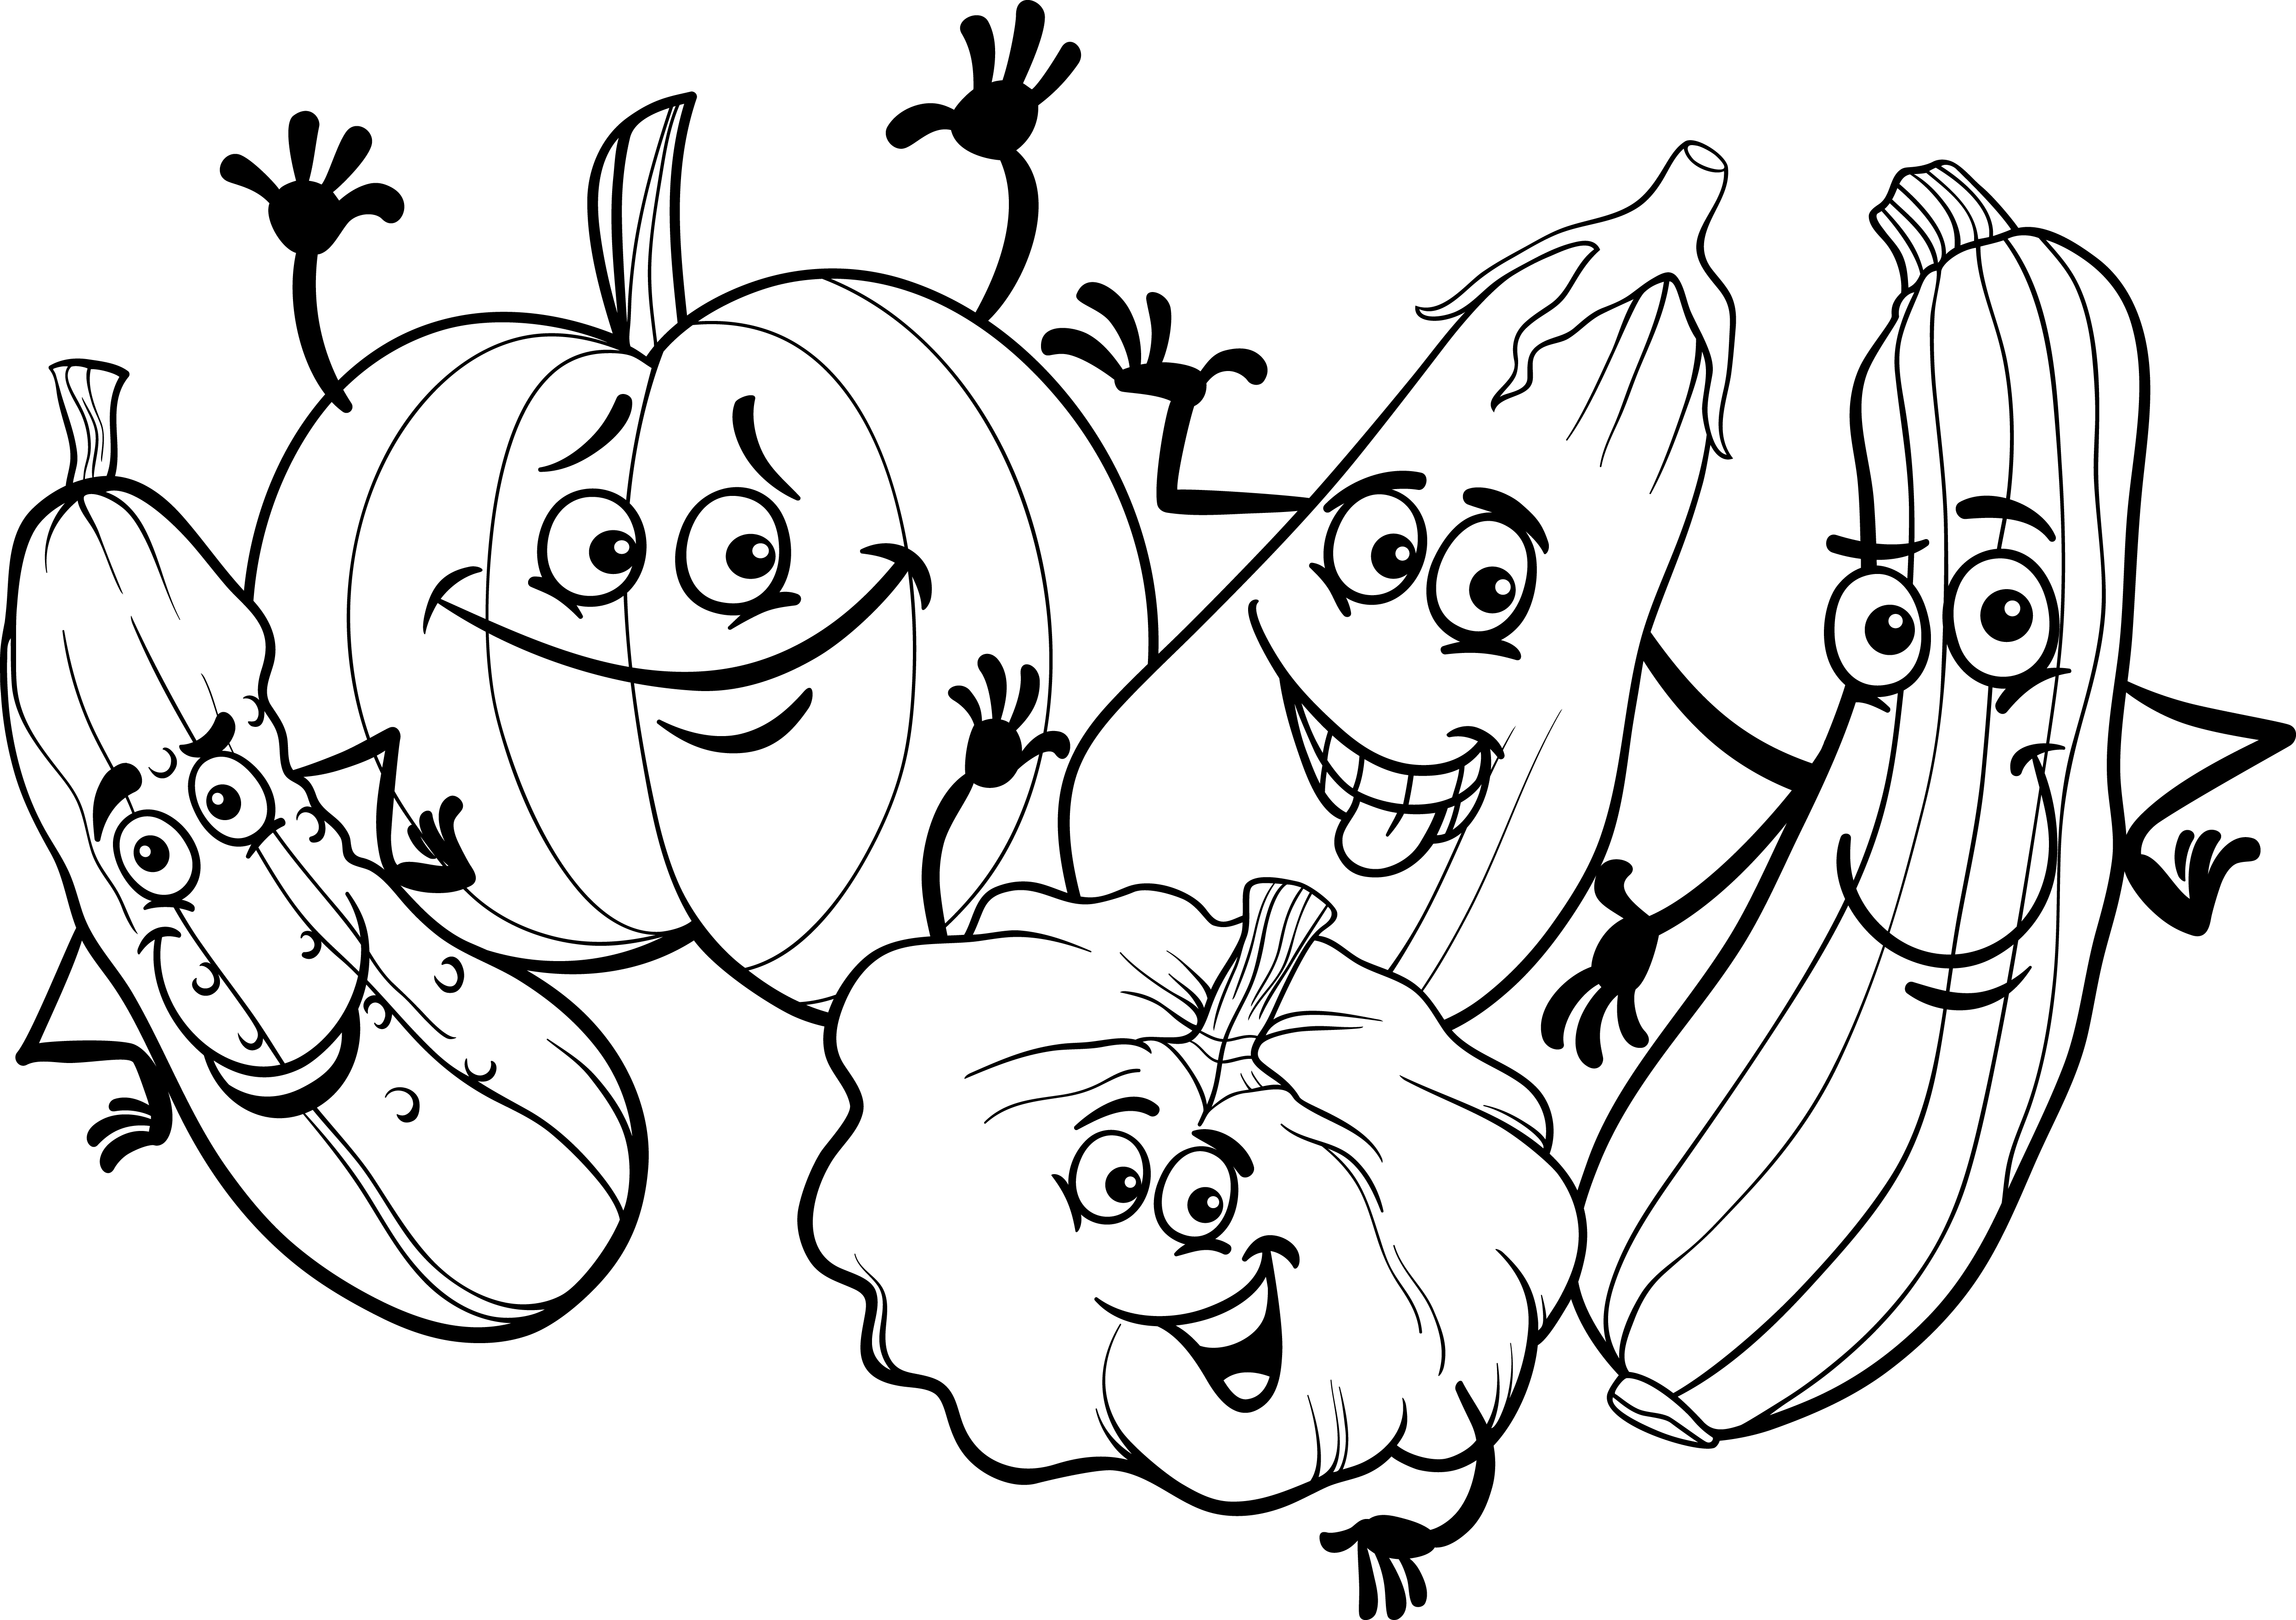 21 Pumpkin Patch Coloring Pages Compilation | FREE COLORING PAGES ...